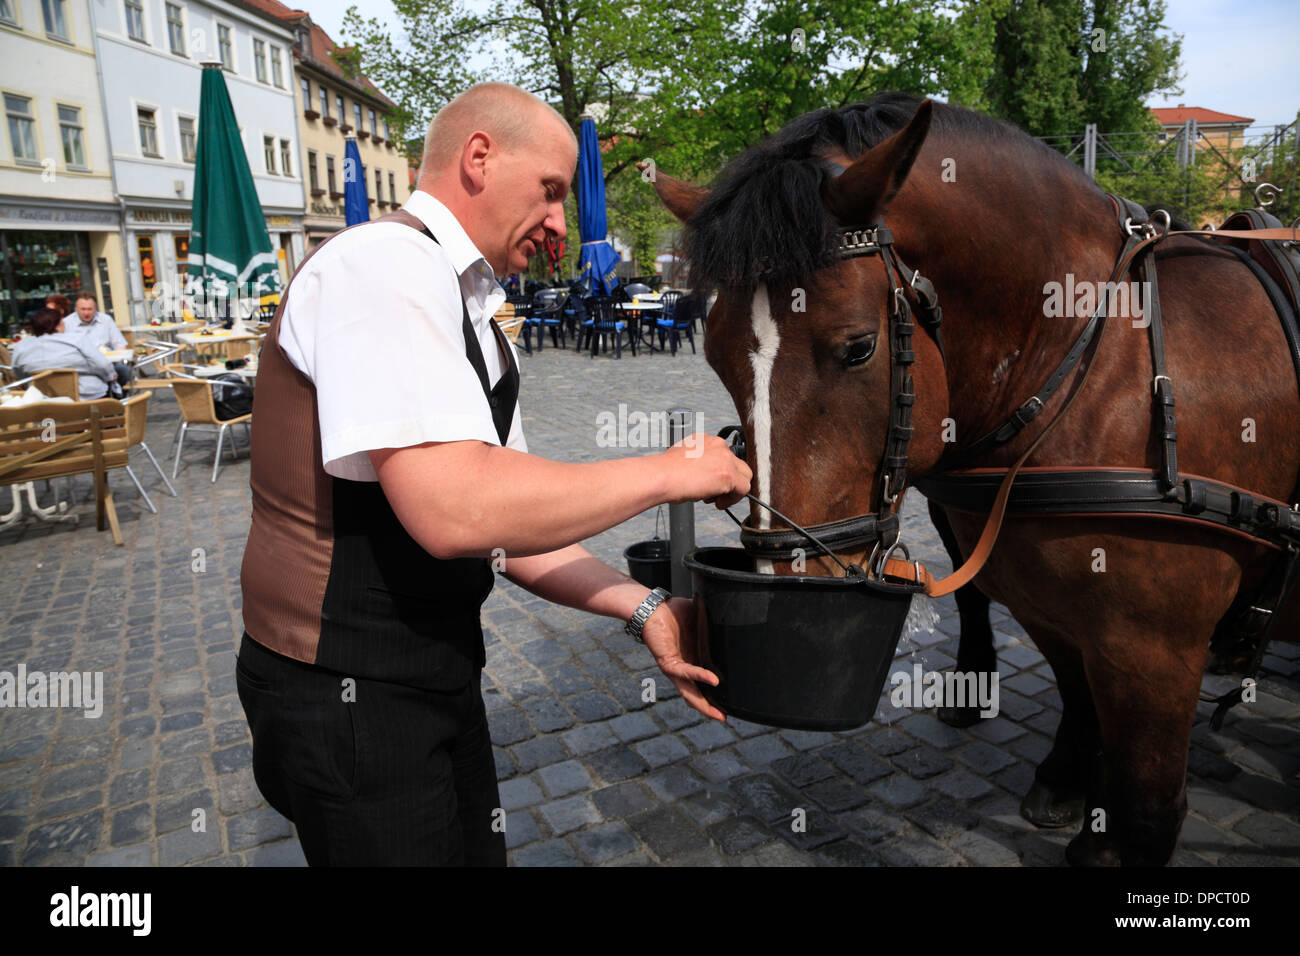 Coachman feeds his Horses  at Frauenplan, Weimar,  Thuringia, Germany, Europe - Stock Image